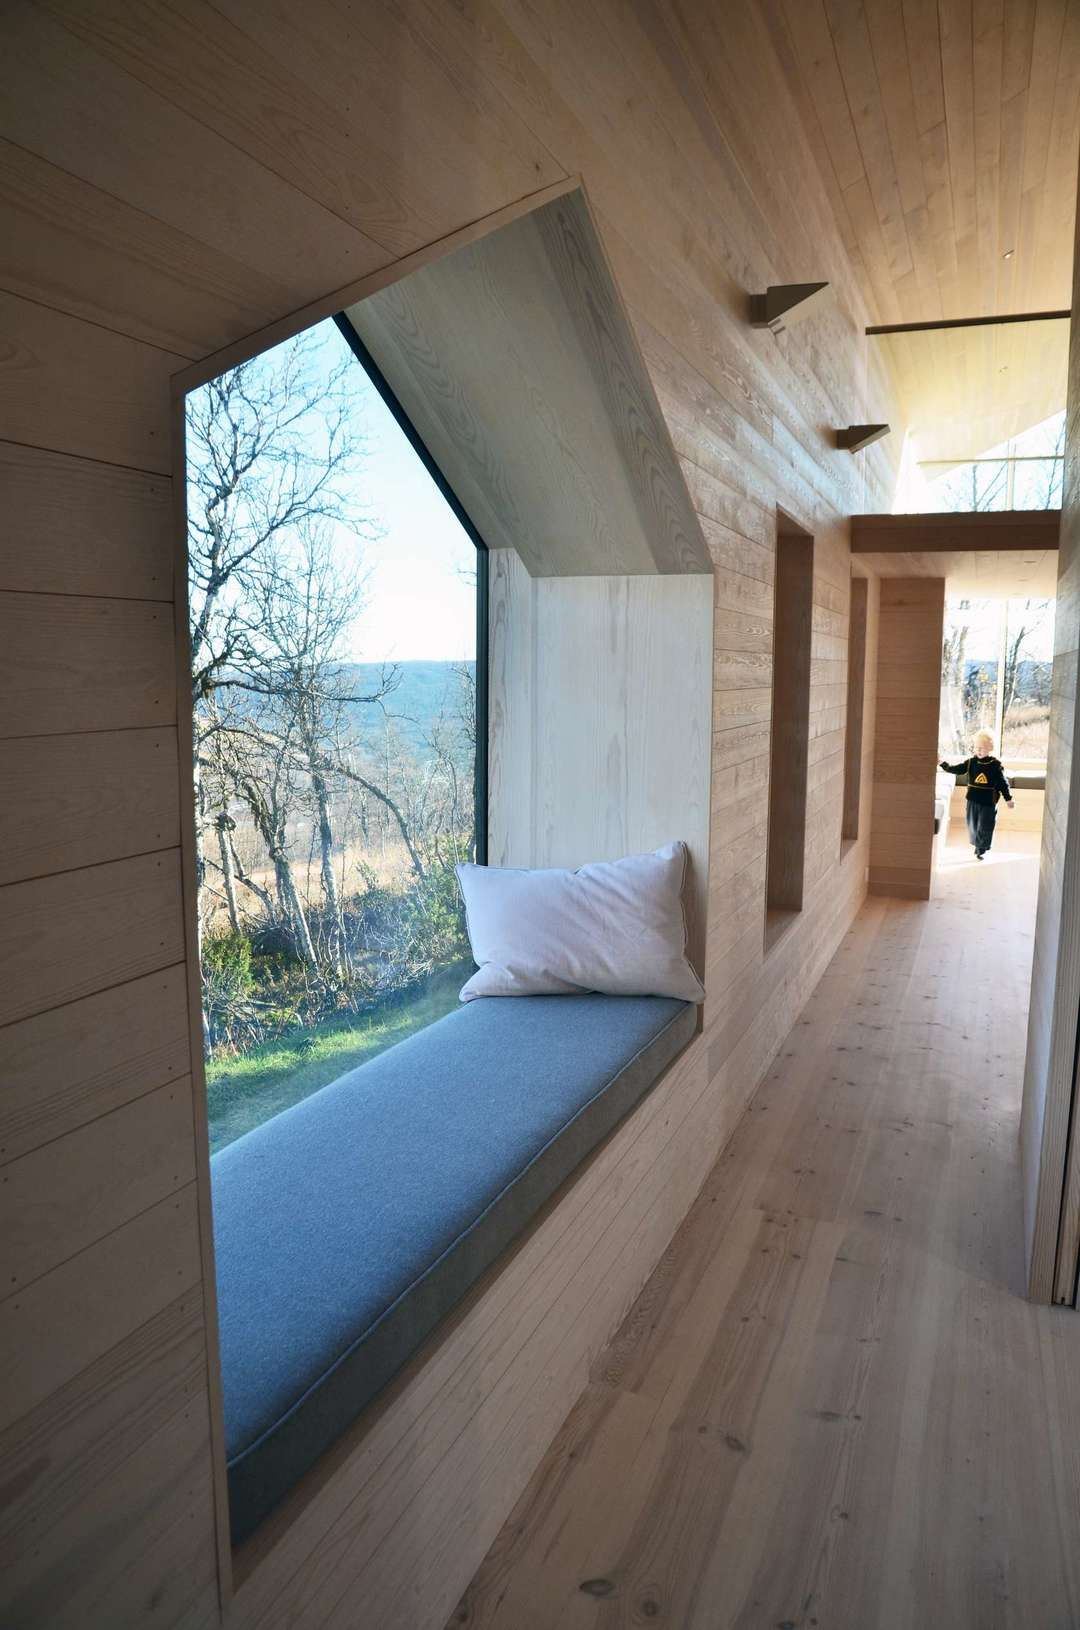 Bord De Fenetre Interieur spectacular views inside and out: 6 nordic cabins